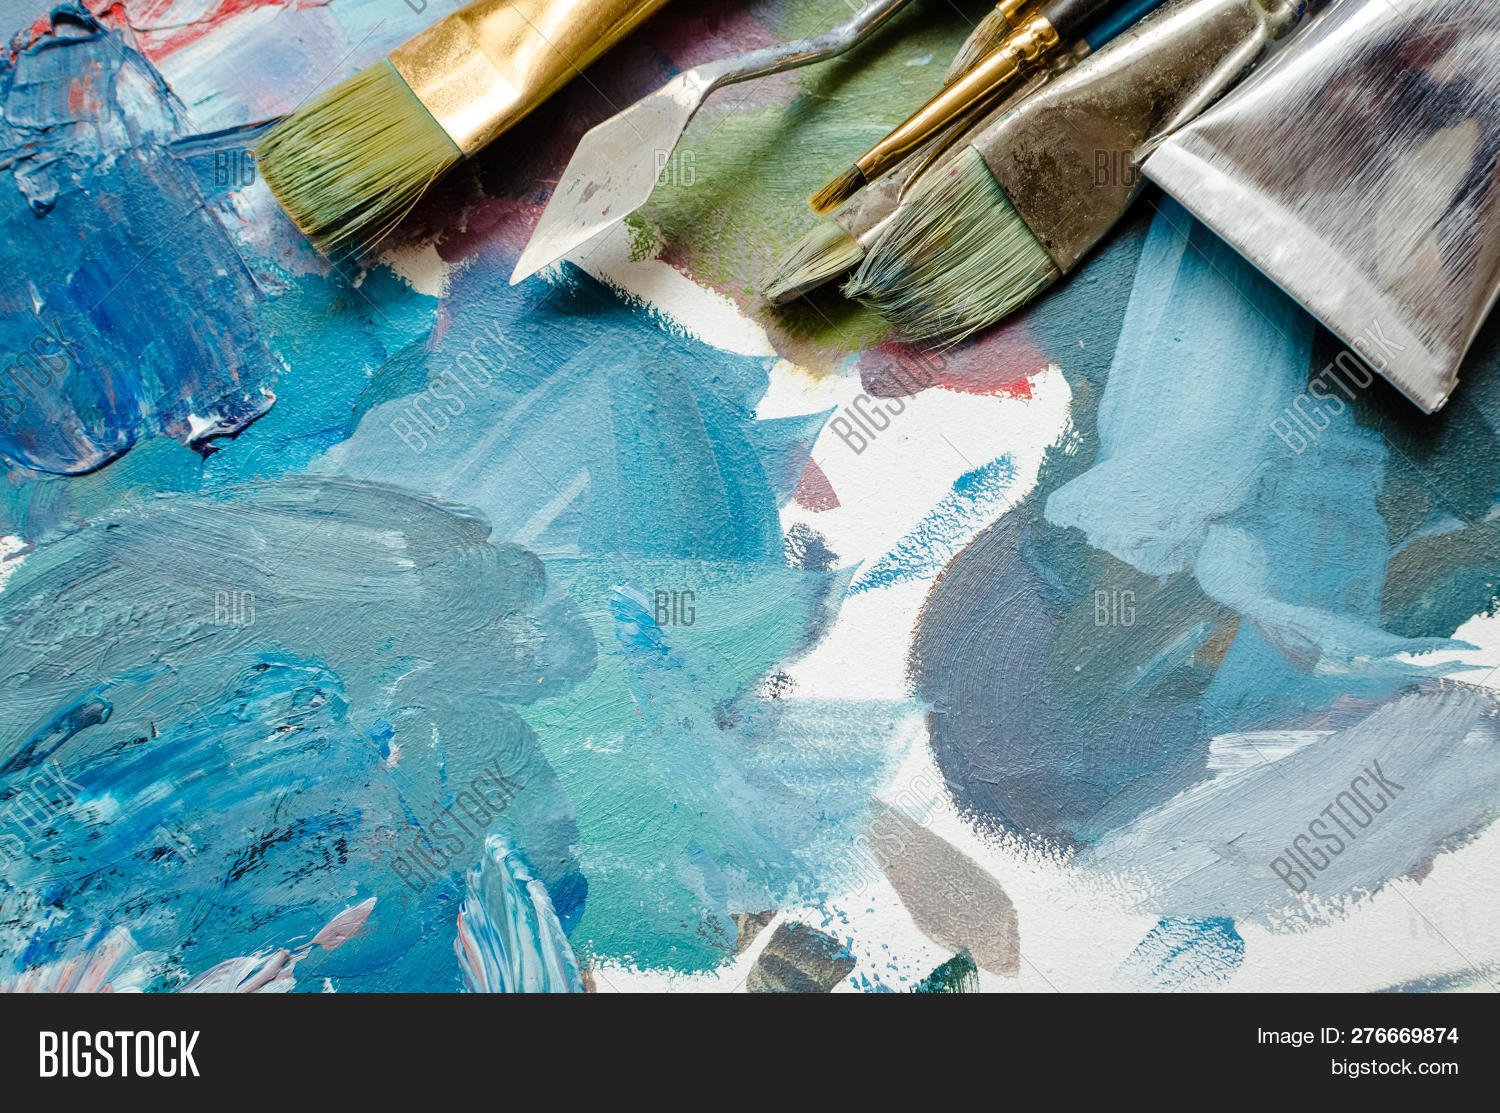 Artist Paint Brushes Image Photo Free Trial Bigstock